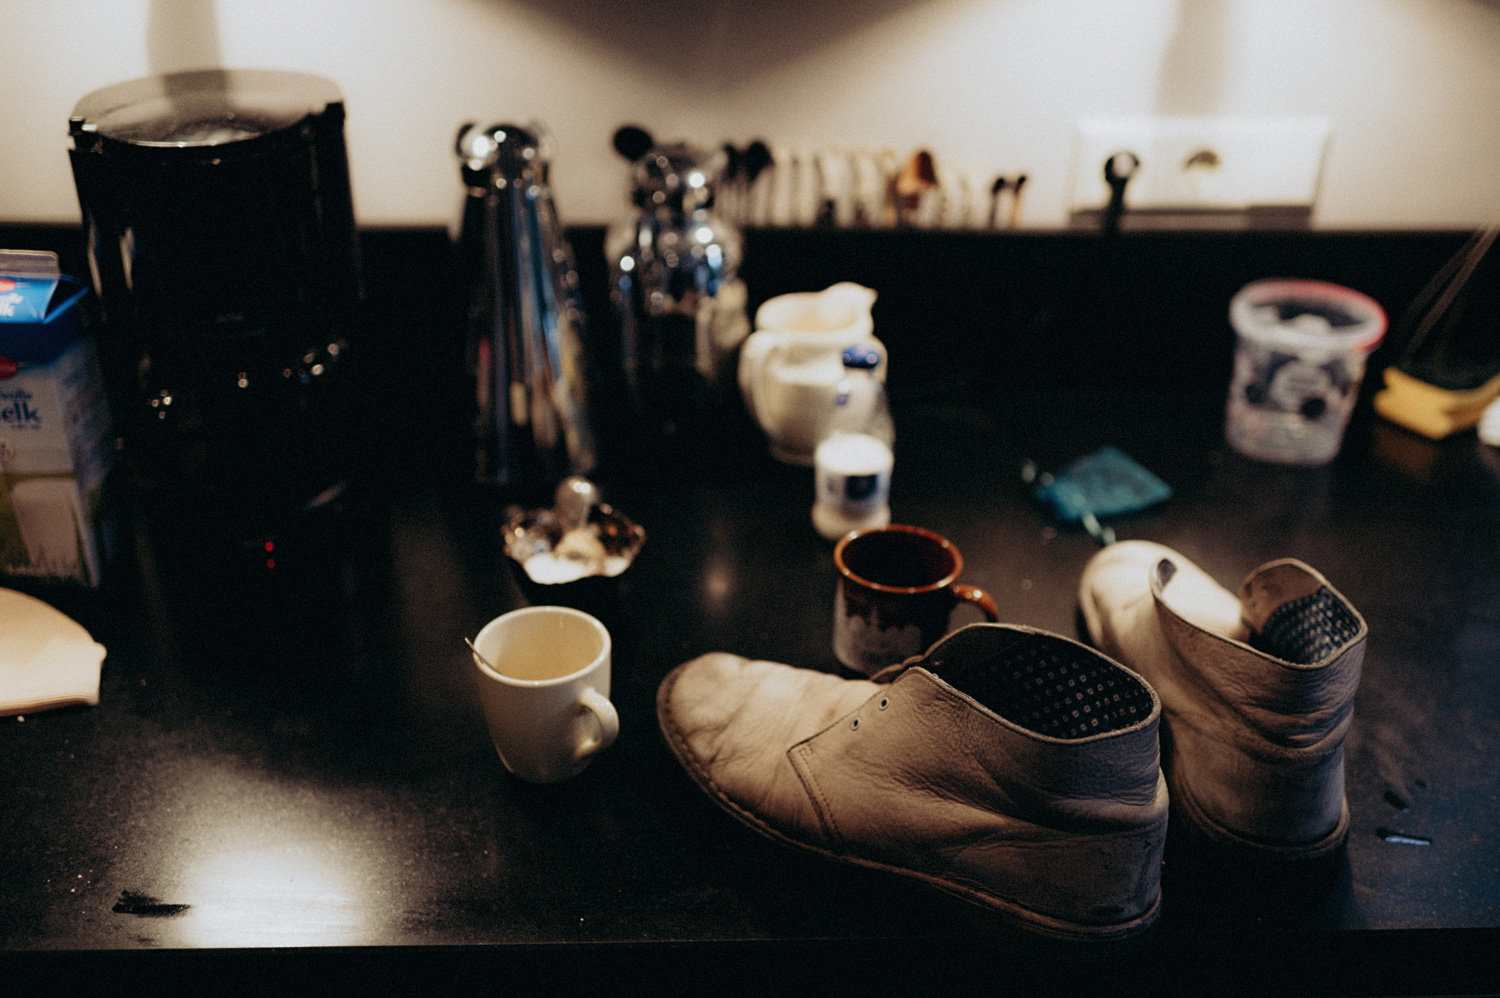 Shoes in kitchen